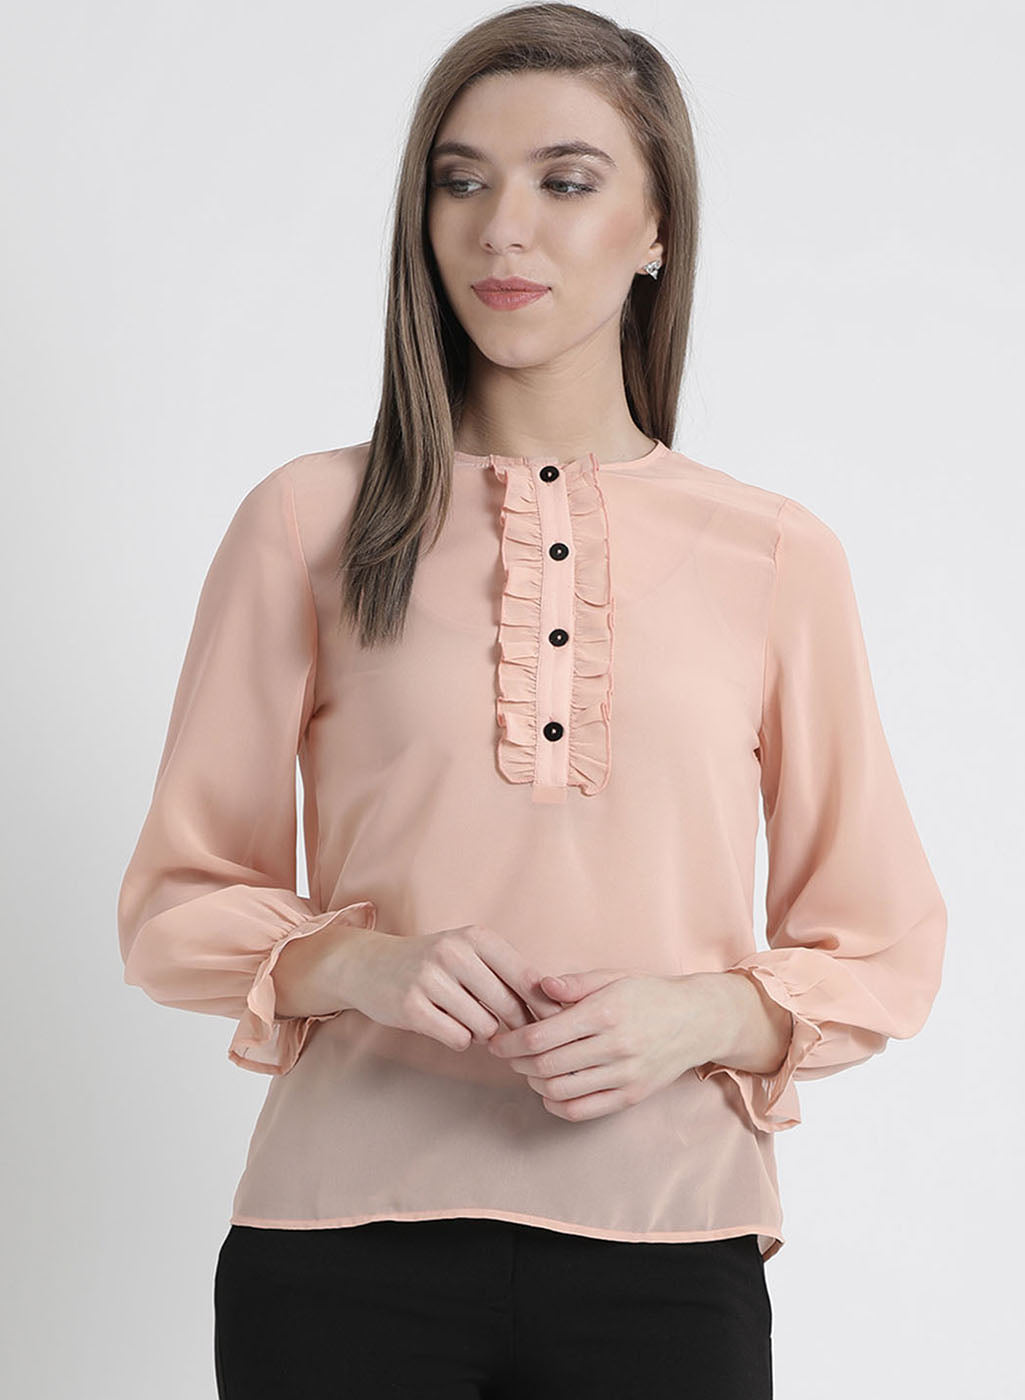 Full Sleeves Top With Ruffle Detailing At Sleeves